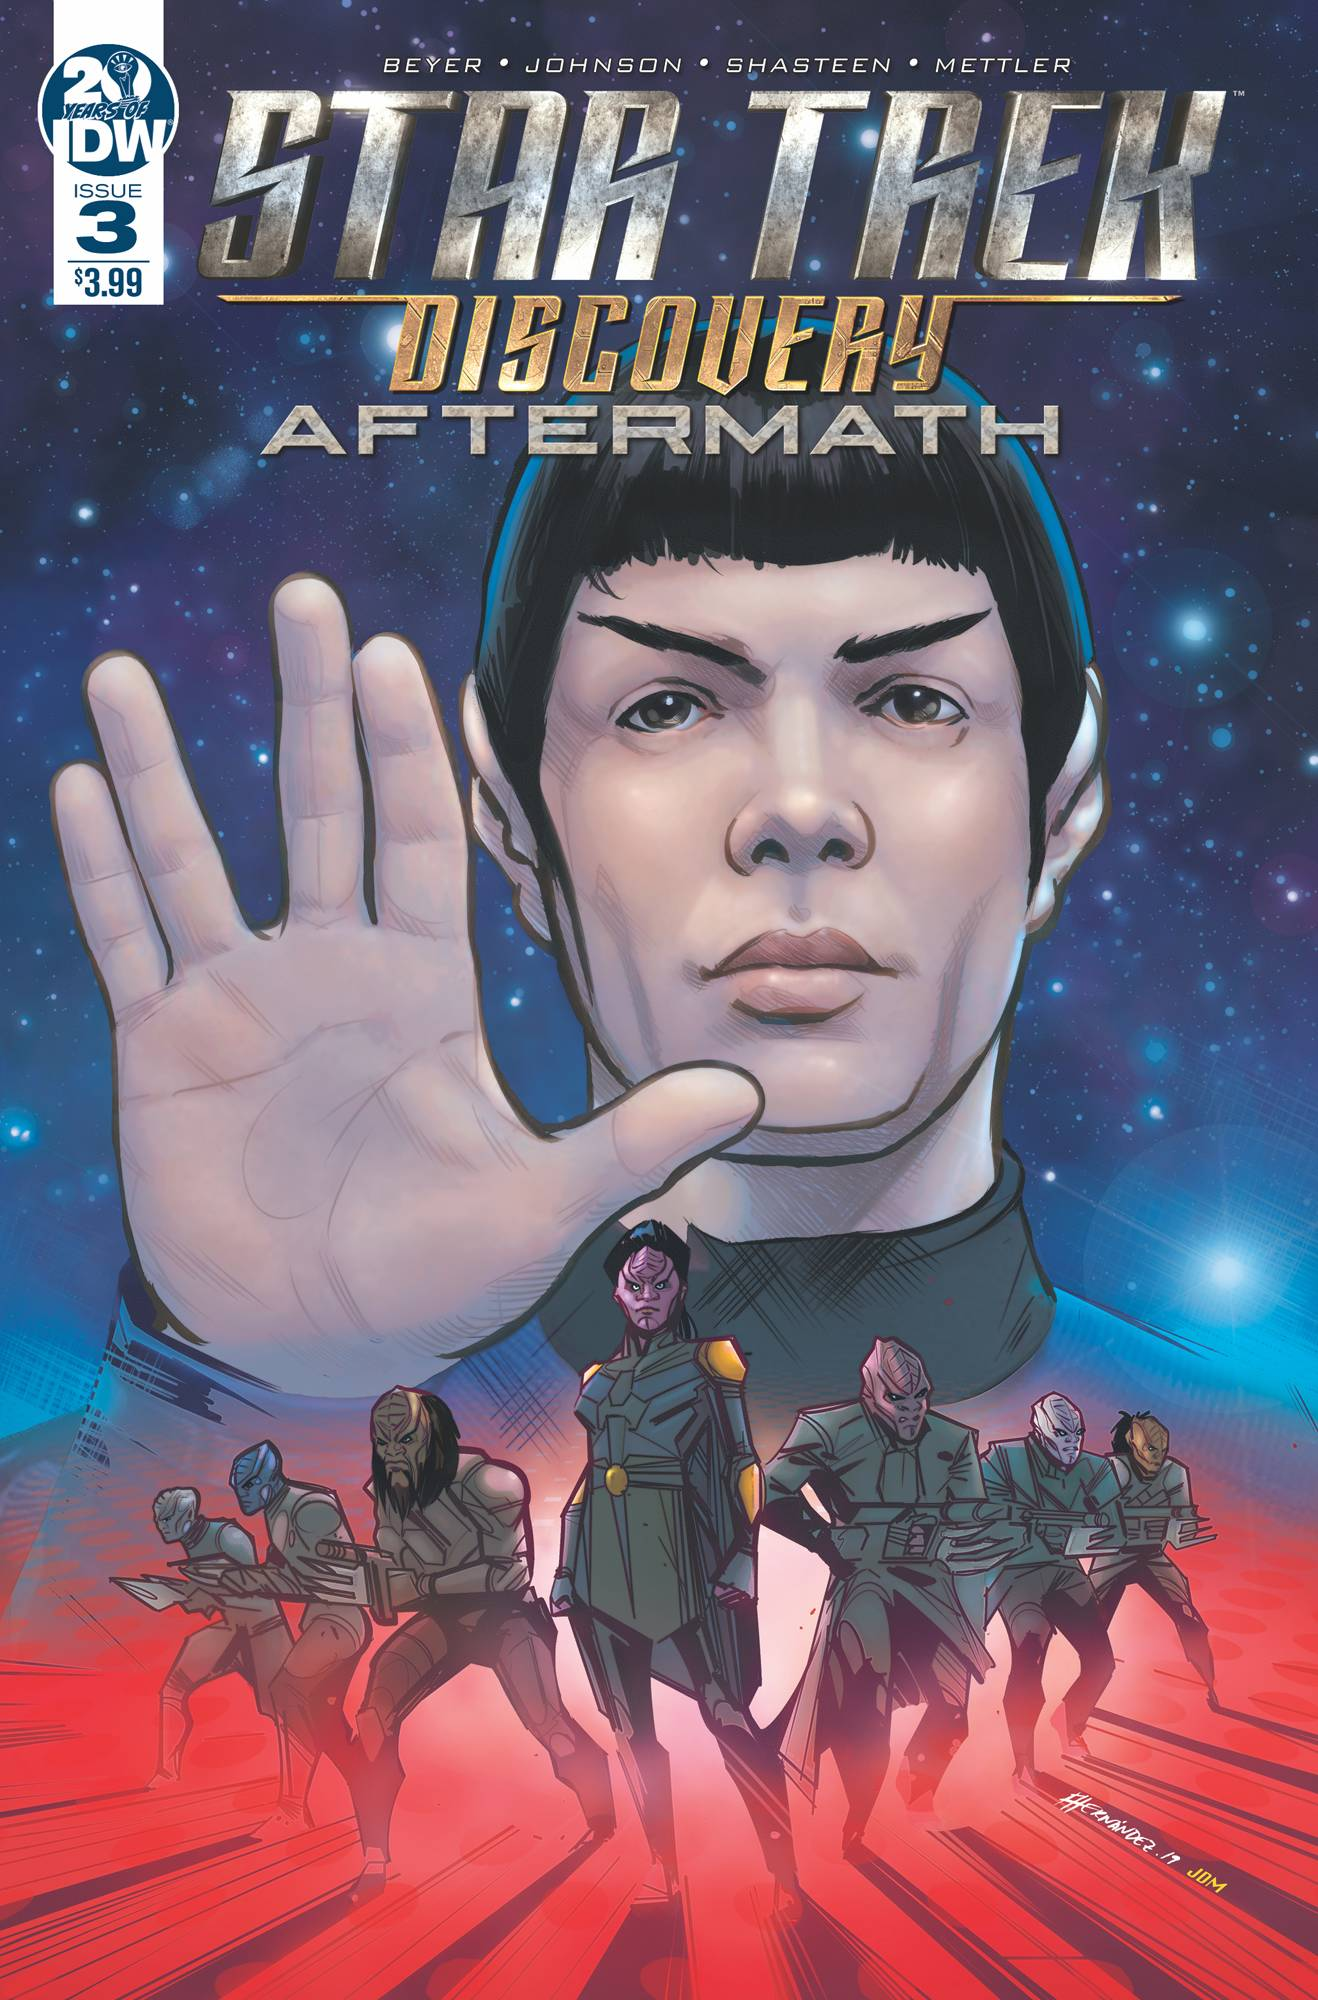 Star Trek: Discovery - Aftermath #3 (2019)